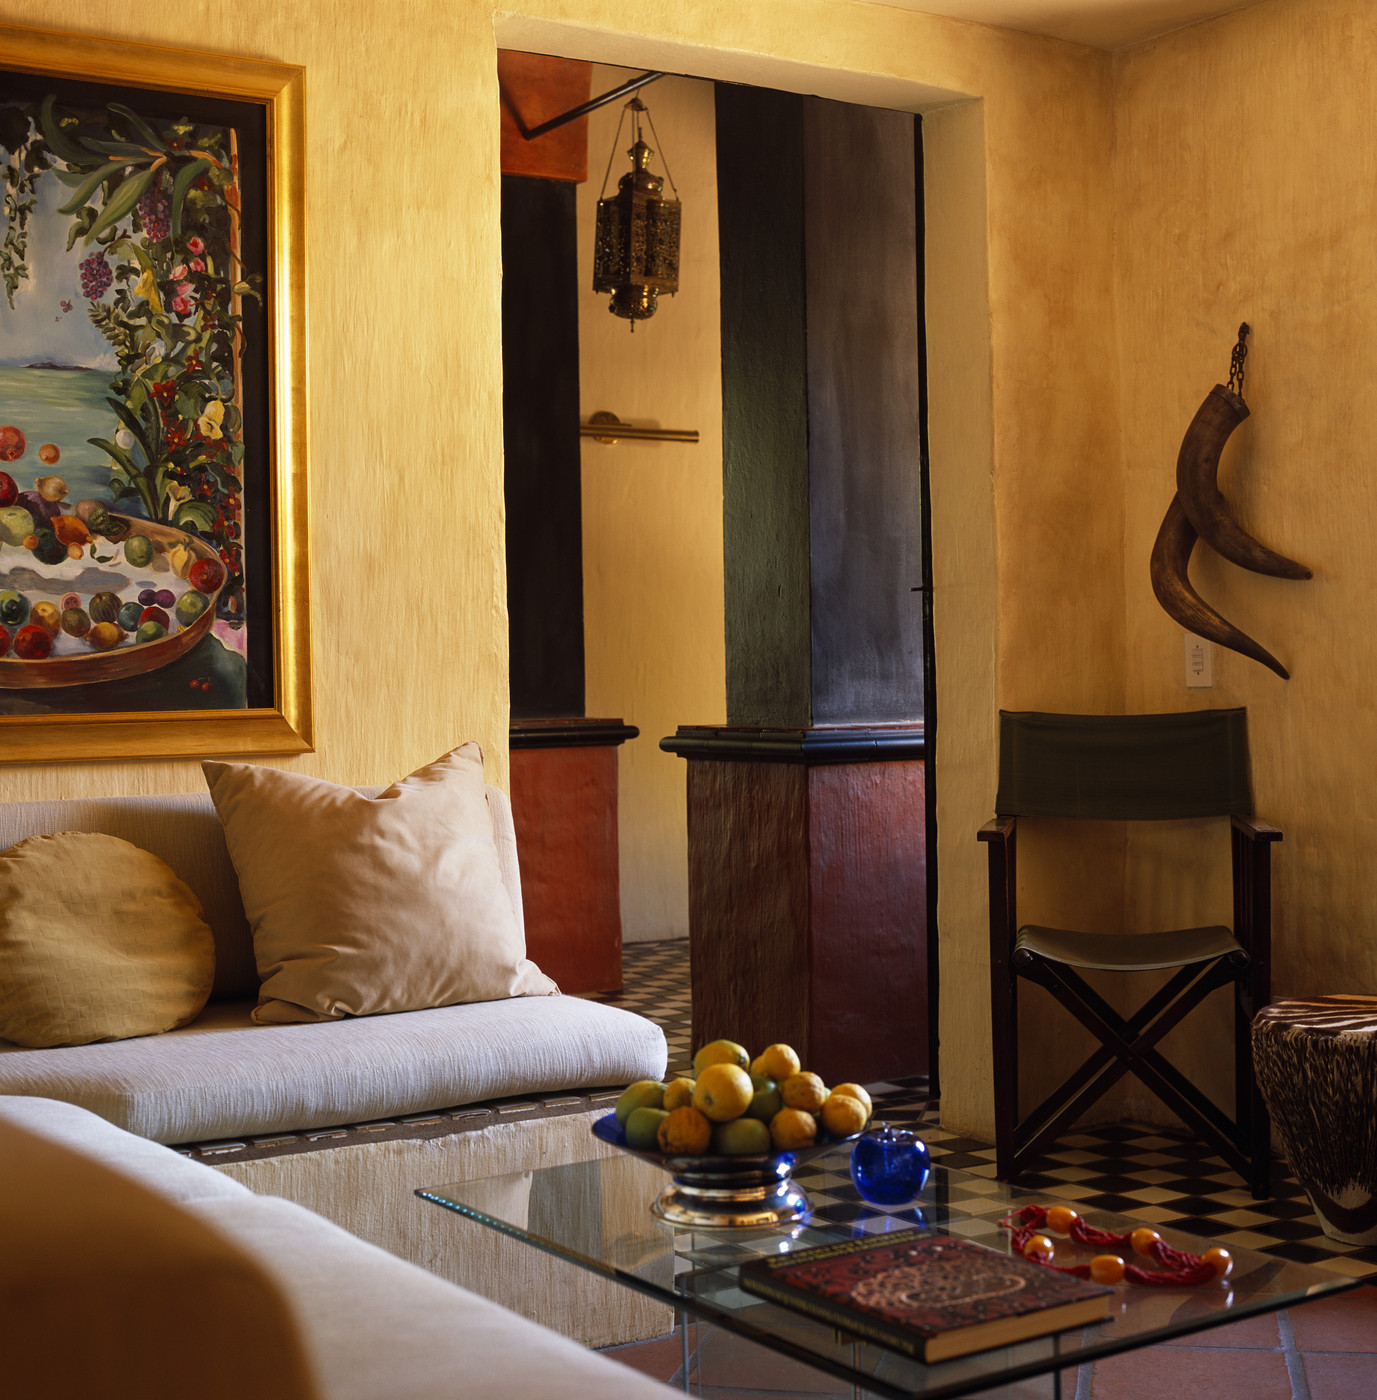 Moroccan Living Room Photos (17 Of 35. Modern And Traditional Living Room. Neutral Paint Color Ideas For Living Room. Mirrors In Living Room Wall. Living Room Furniture Ideas For Small Spaces. Round Living Room Chair. Fifth Wheel With Living Room Up Top. Living Room Ideas Black White And Red. Luxury Curtains For Living Room